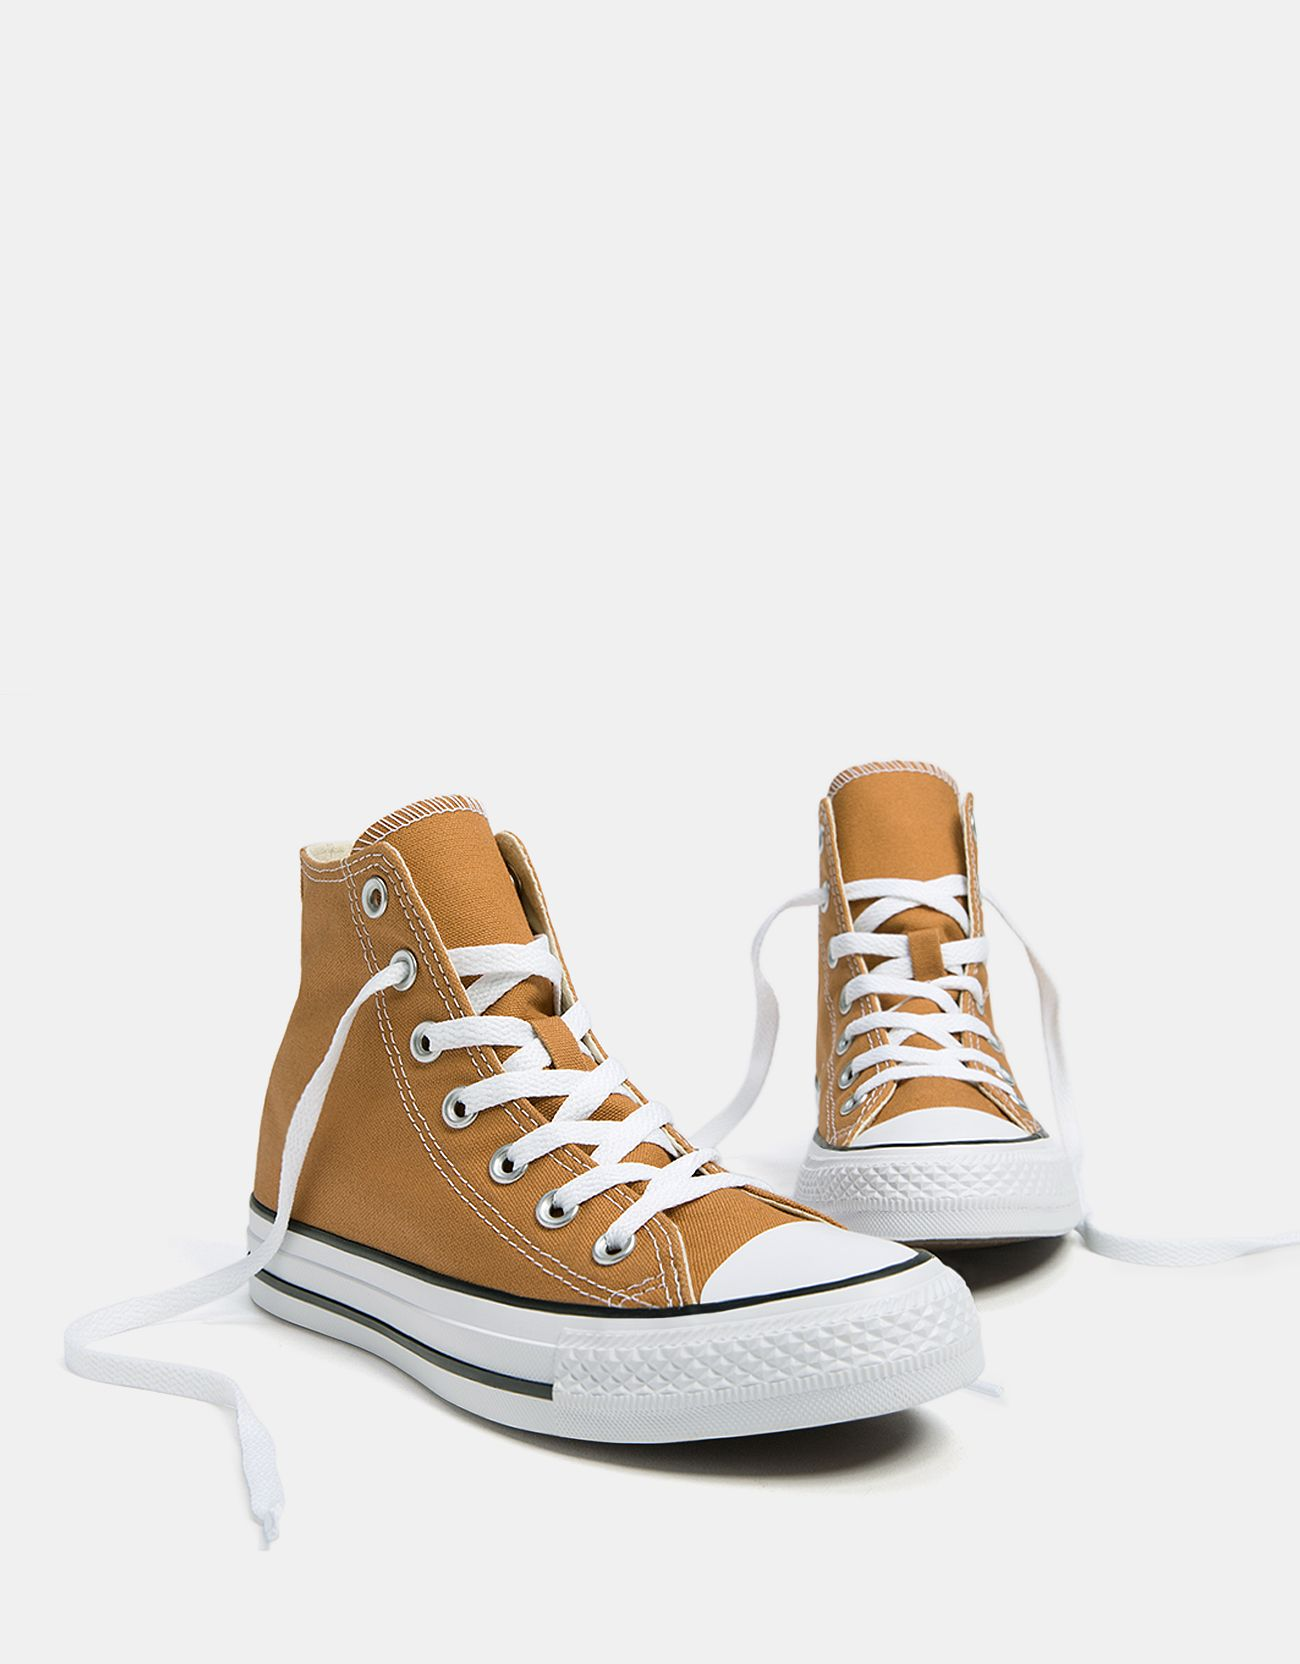 designer fashion f564b 07a7e CONVERSE ALL STAR high top canvas sneakers.  Converse  Bershka  mustard